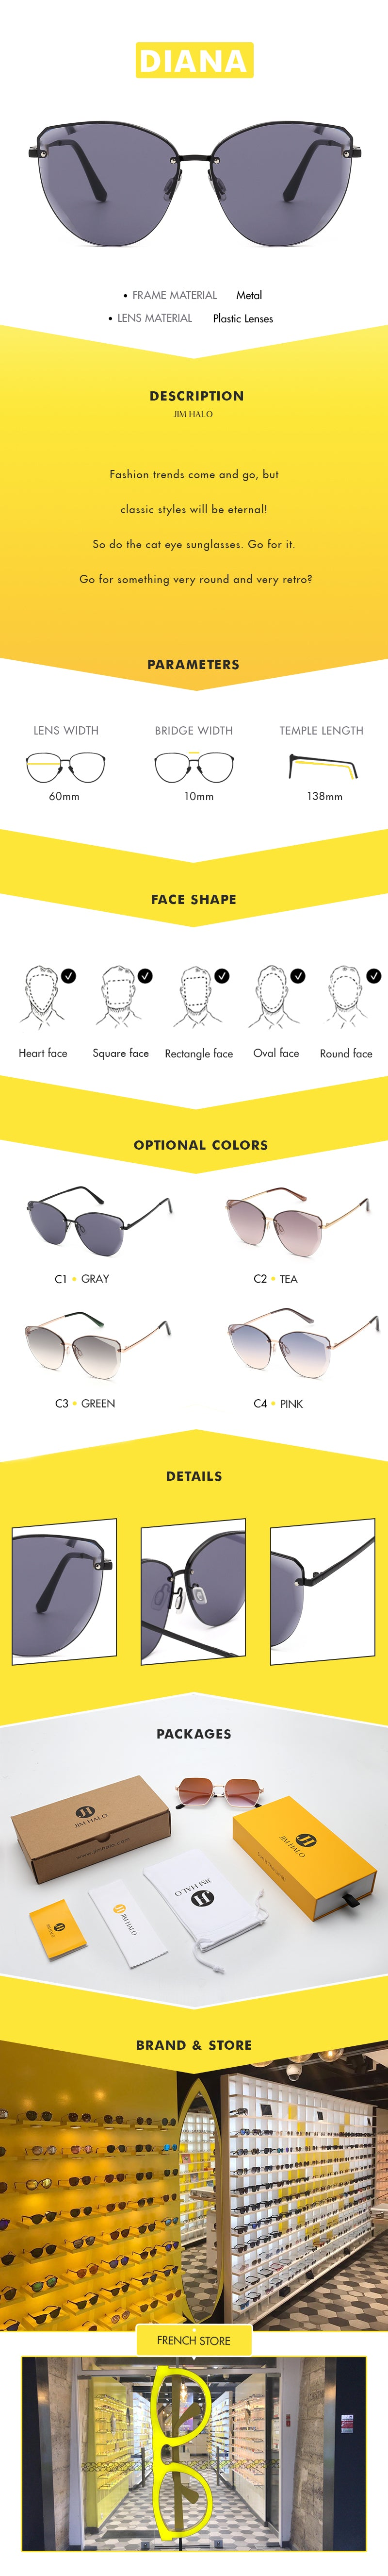 <p>Fashion trends come and go, but classic styles will be eternal! So do the <strong>cat eye sunglasses</strong>. Go for it. Go for something very round and very retro?<br></p> <p> </p>